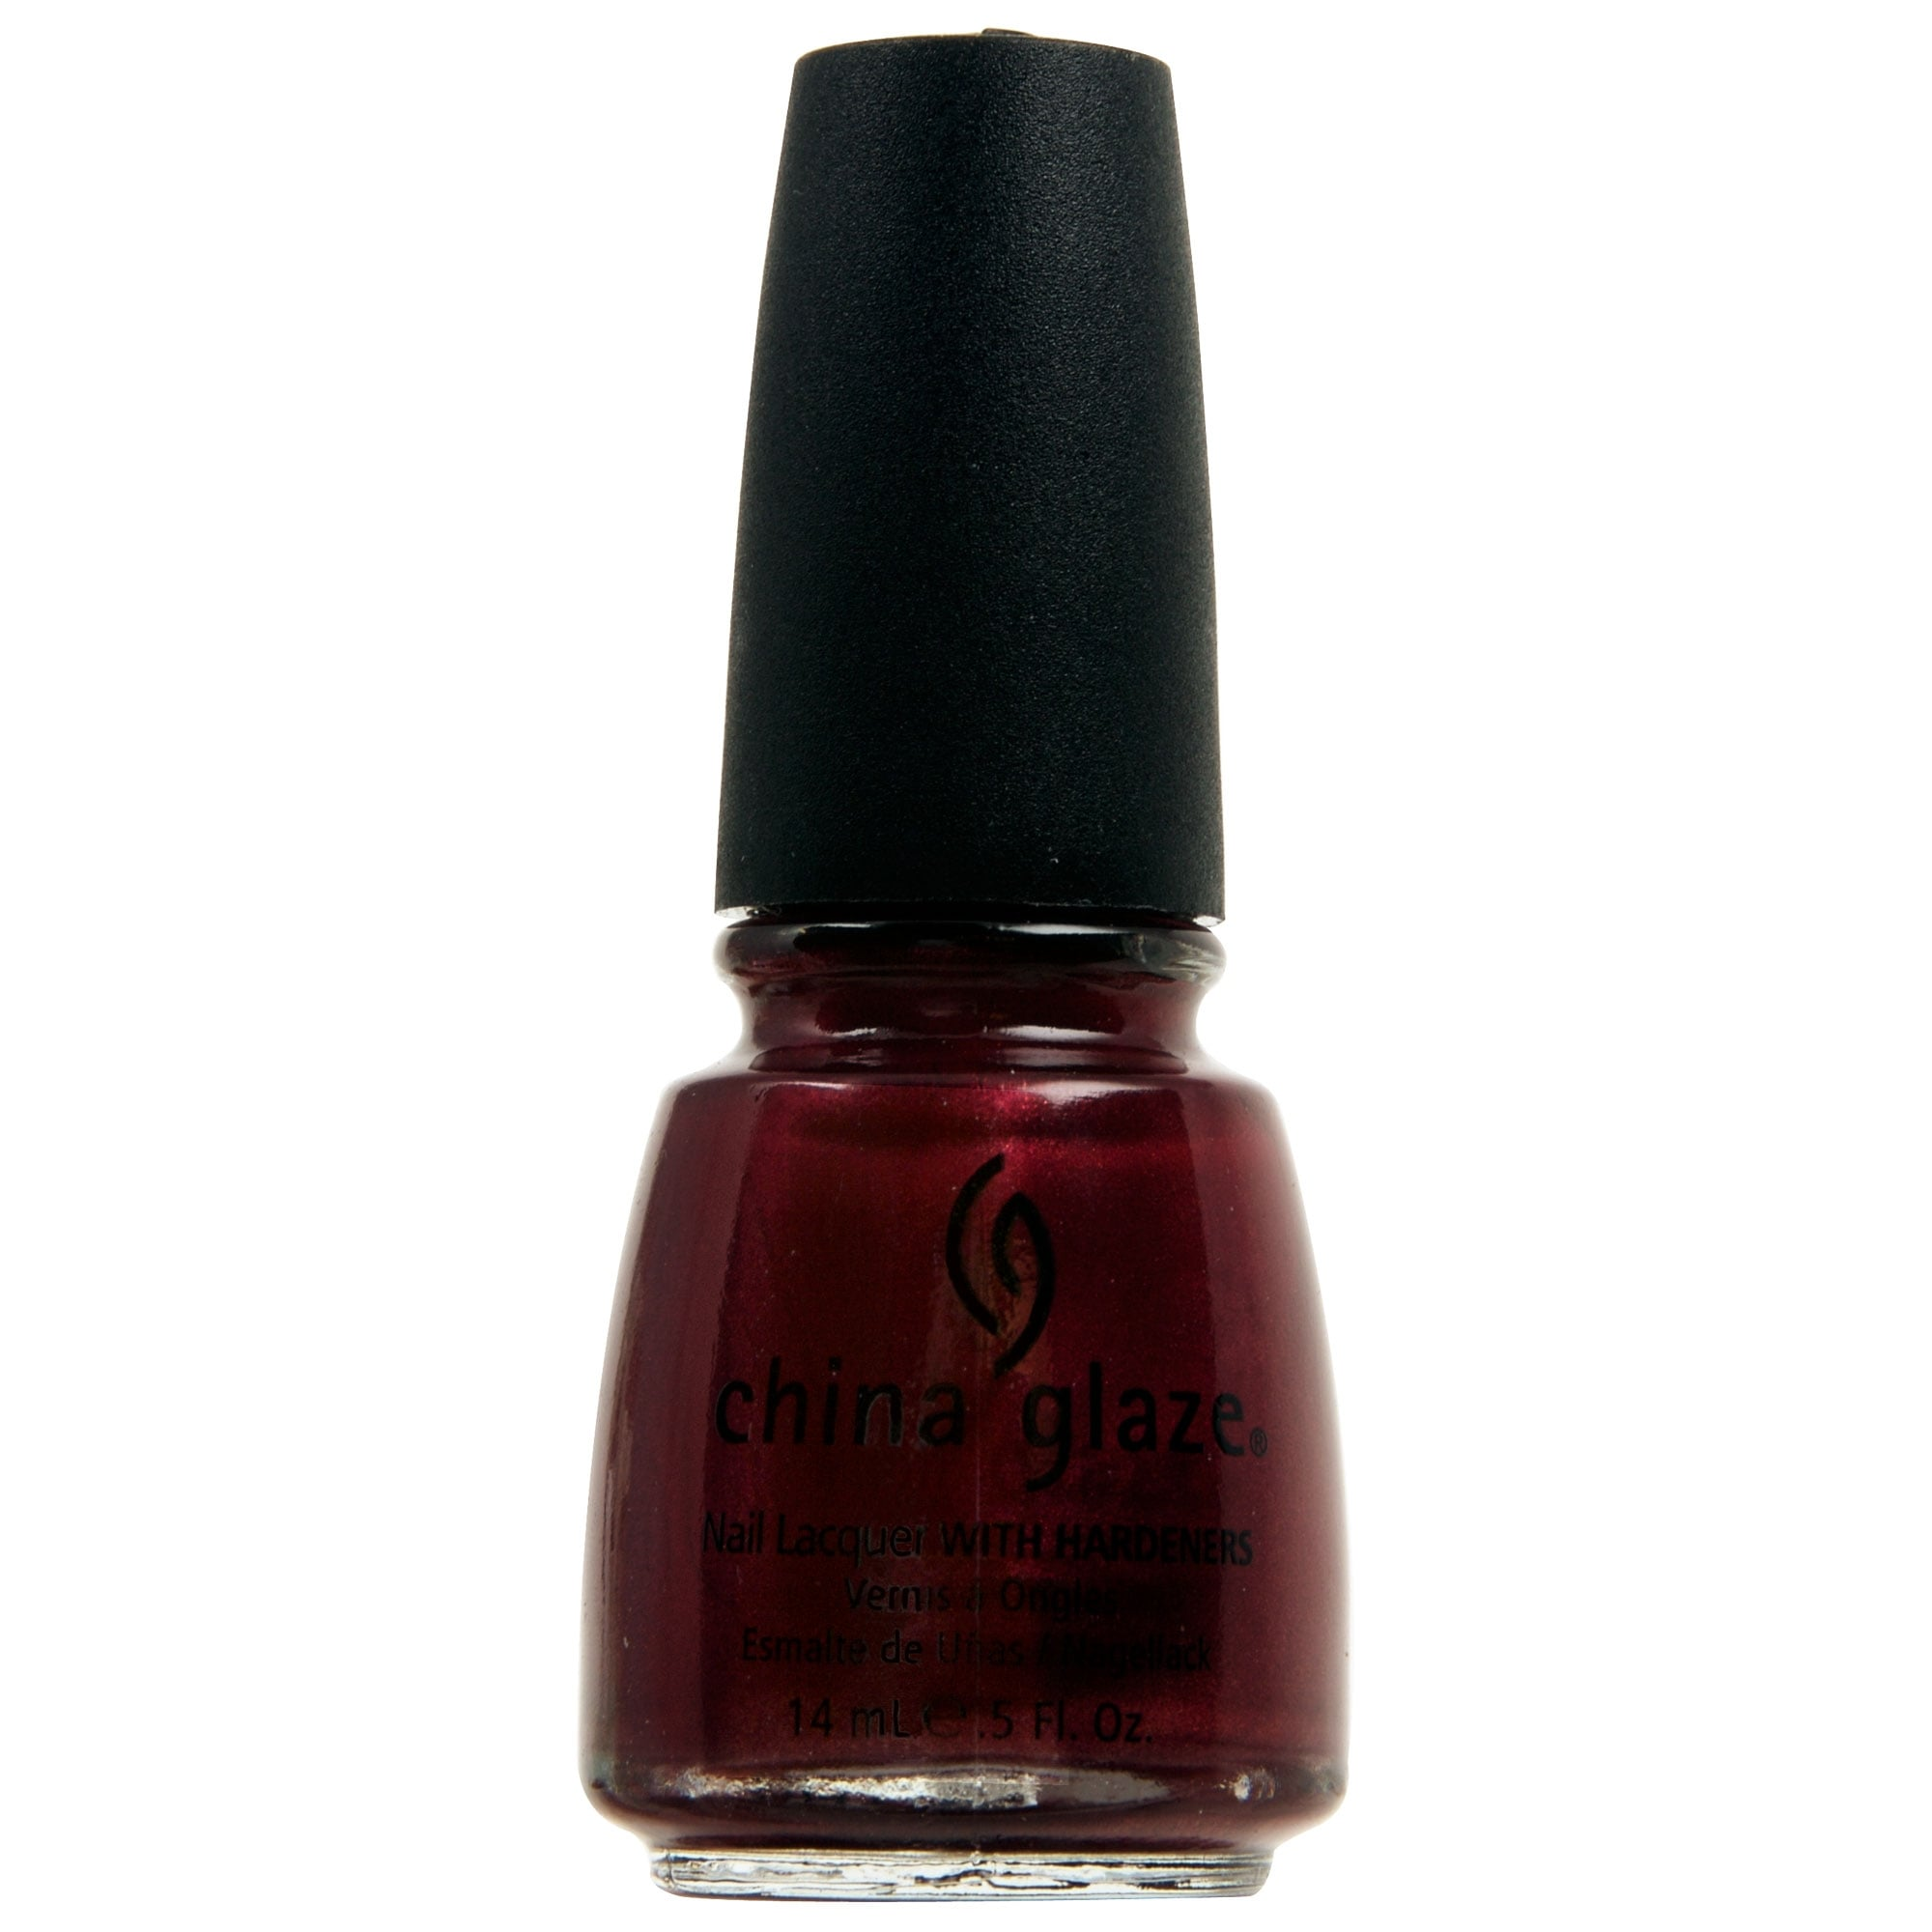 ... Glaze ‹ View All Nail Polish ‹ View All China Glaze Nail Polish